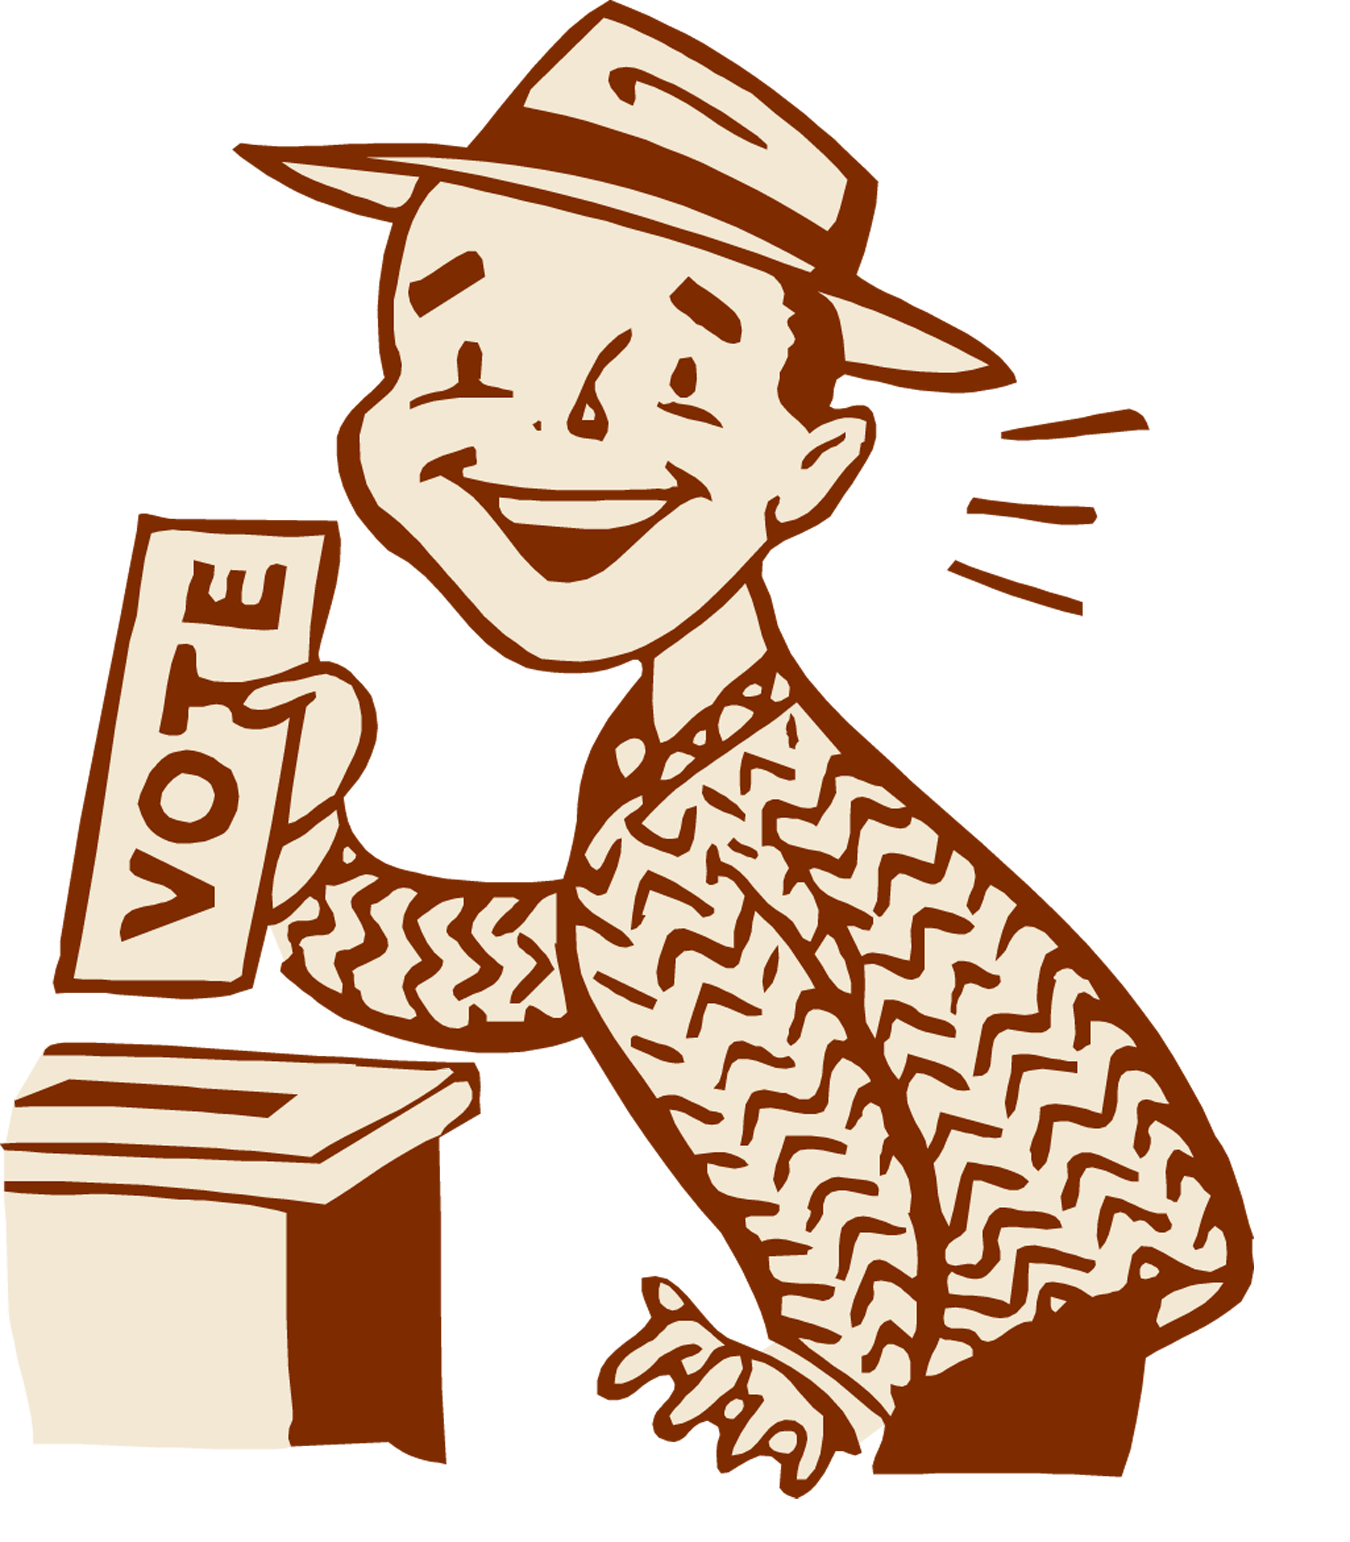 Voting clipart malfeasance. Character transparent png stickpng